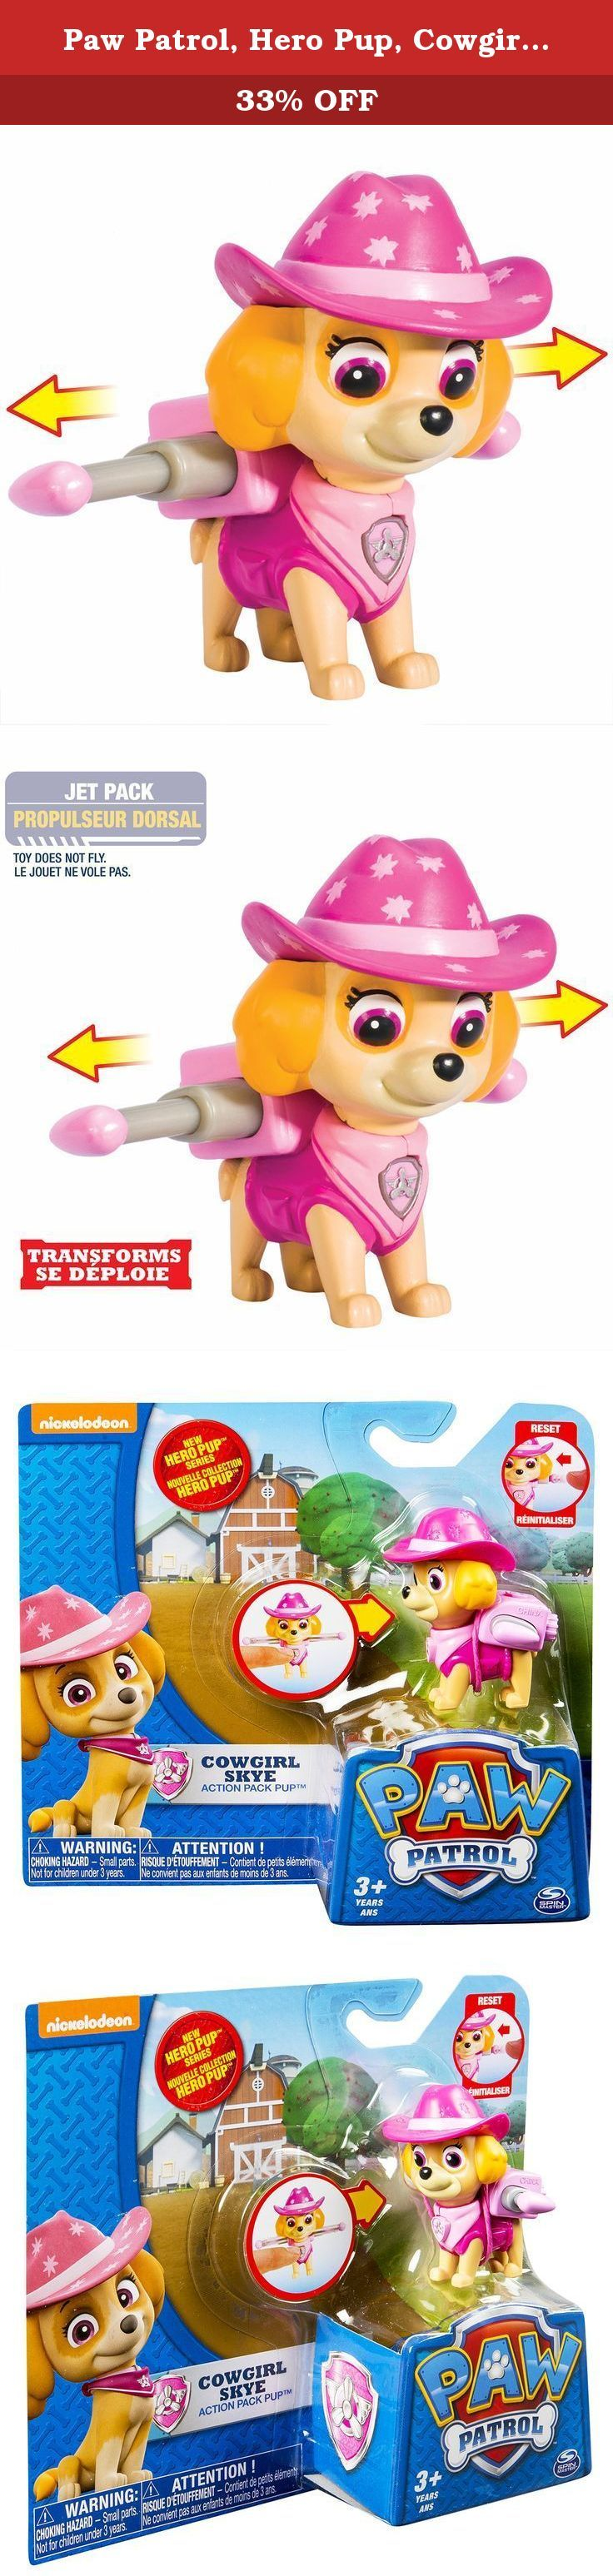 Paw Patrol, Hero Pup, Cowgirl Skye. Recreate the pups' western adventure with Cowboy Skye! This action-packed, cowboy themed pup is a fearless and smart Cockapoo who can't wait to take off! Press Skye's dog tag to transform her Pup Pack into highflying wings just like in the show! Need some Paw Patrol help? Collect each loveable Paw Patrol pup in the brand new Hero Series and work together as a team! Whether it's Chase, Rubble, Zuma, Rocky, Marshall or Skye, each pup has a unique push…